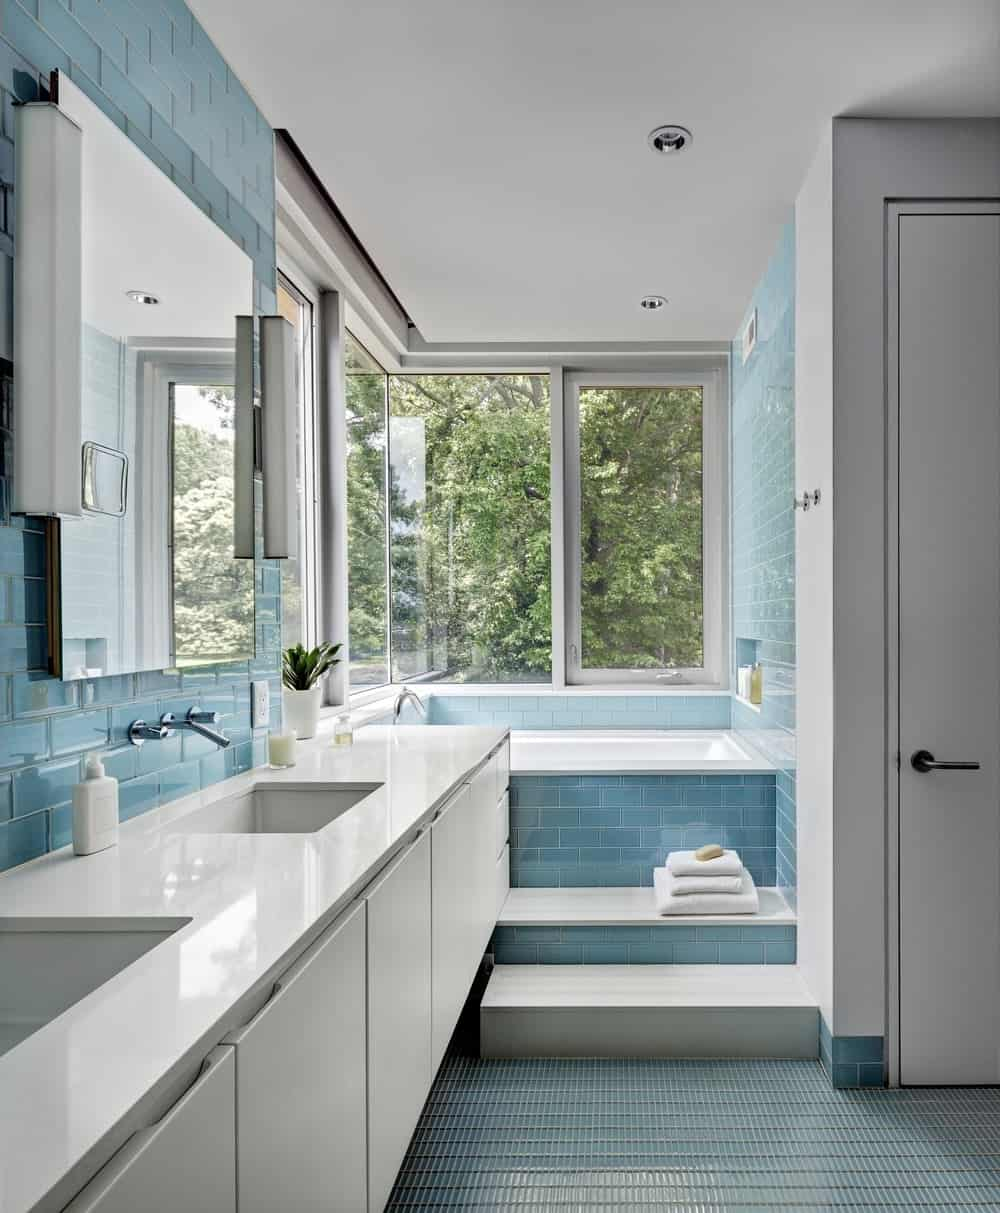 Bathroom Ideas: How To Bring A Timeless Touch